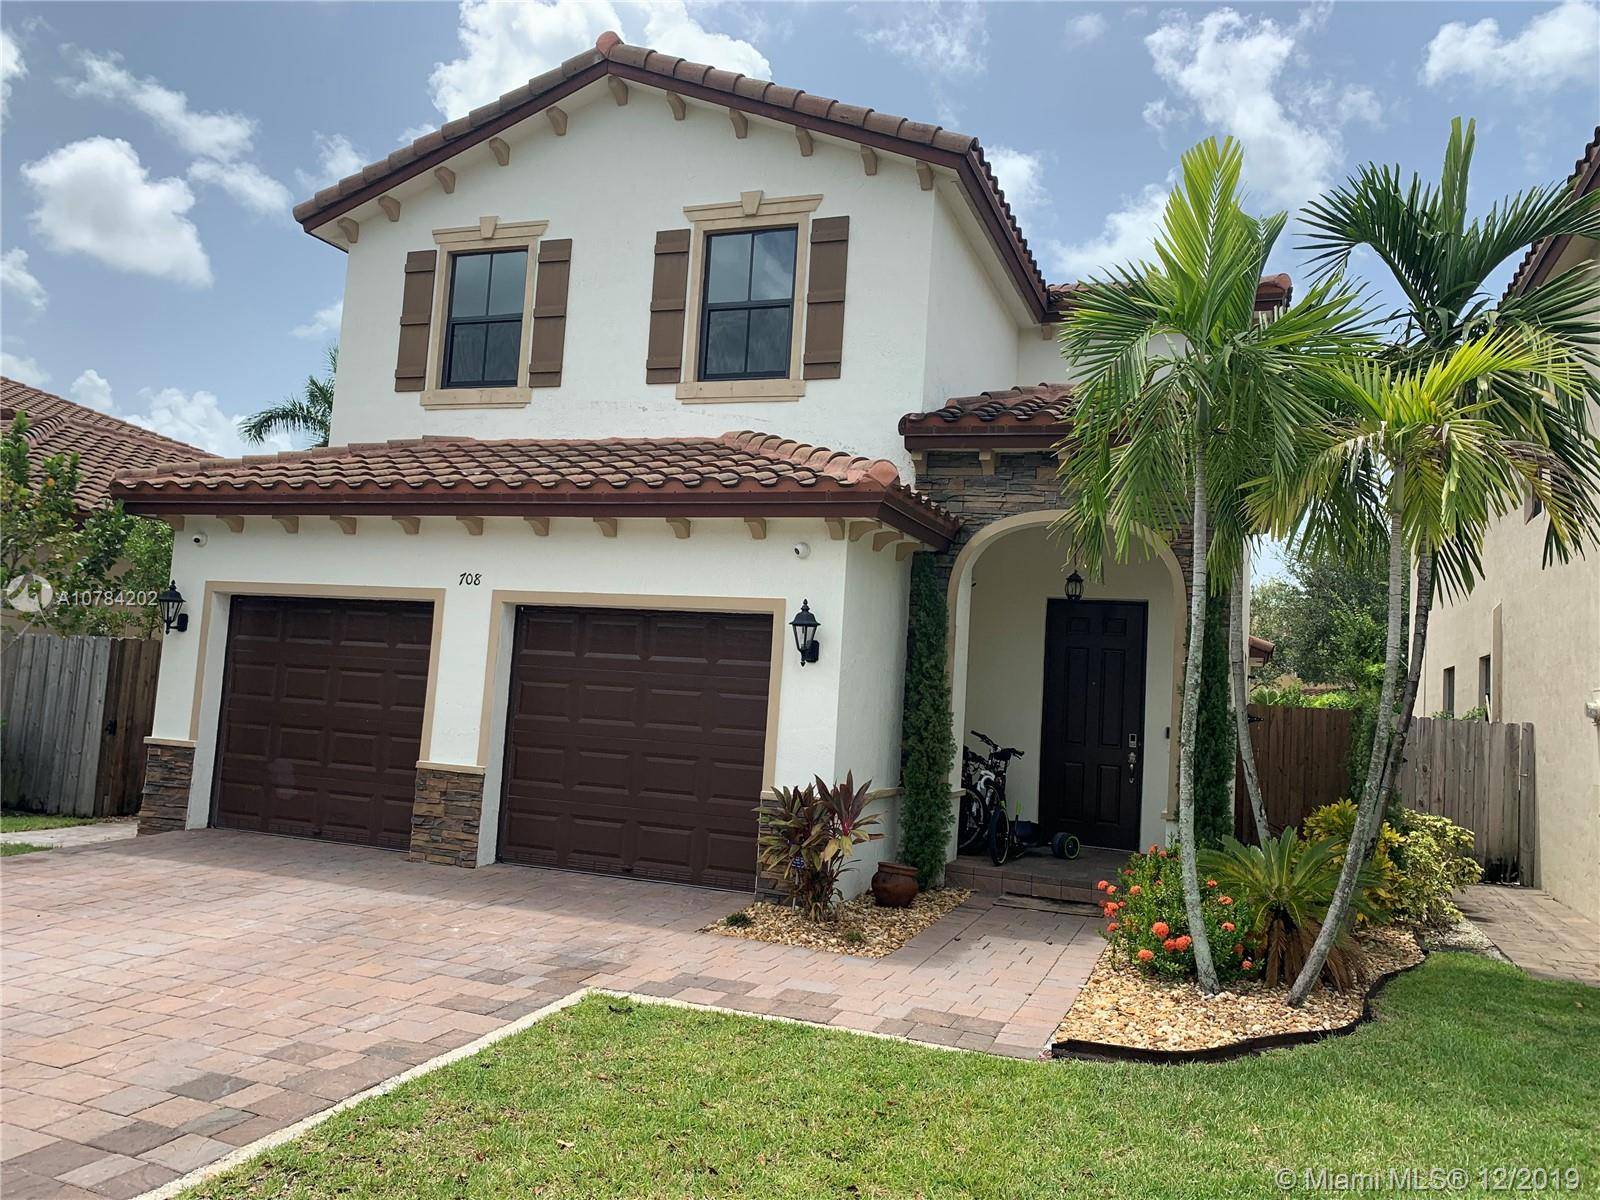 708 SE 33rd Ter, Homestead, FL 33033 - Homestead, FL real estate listing